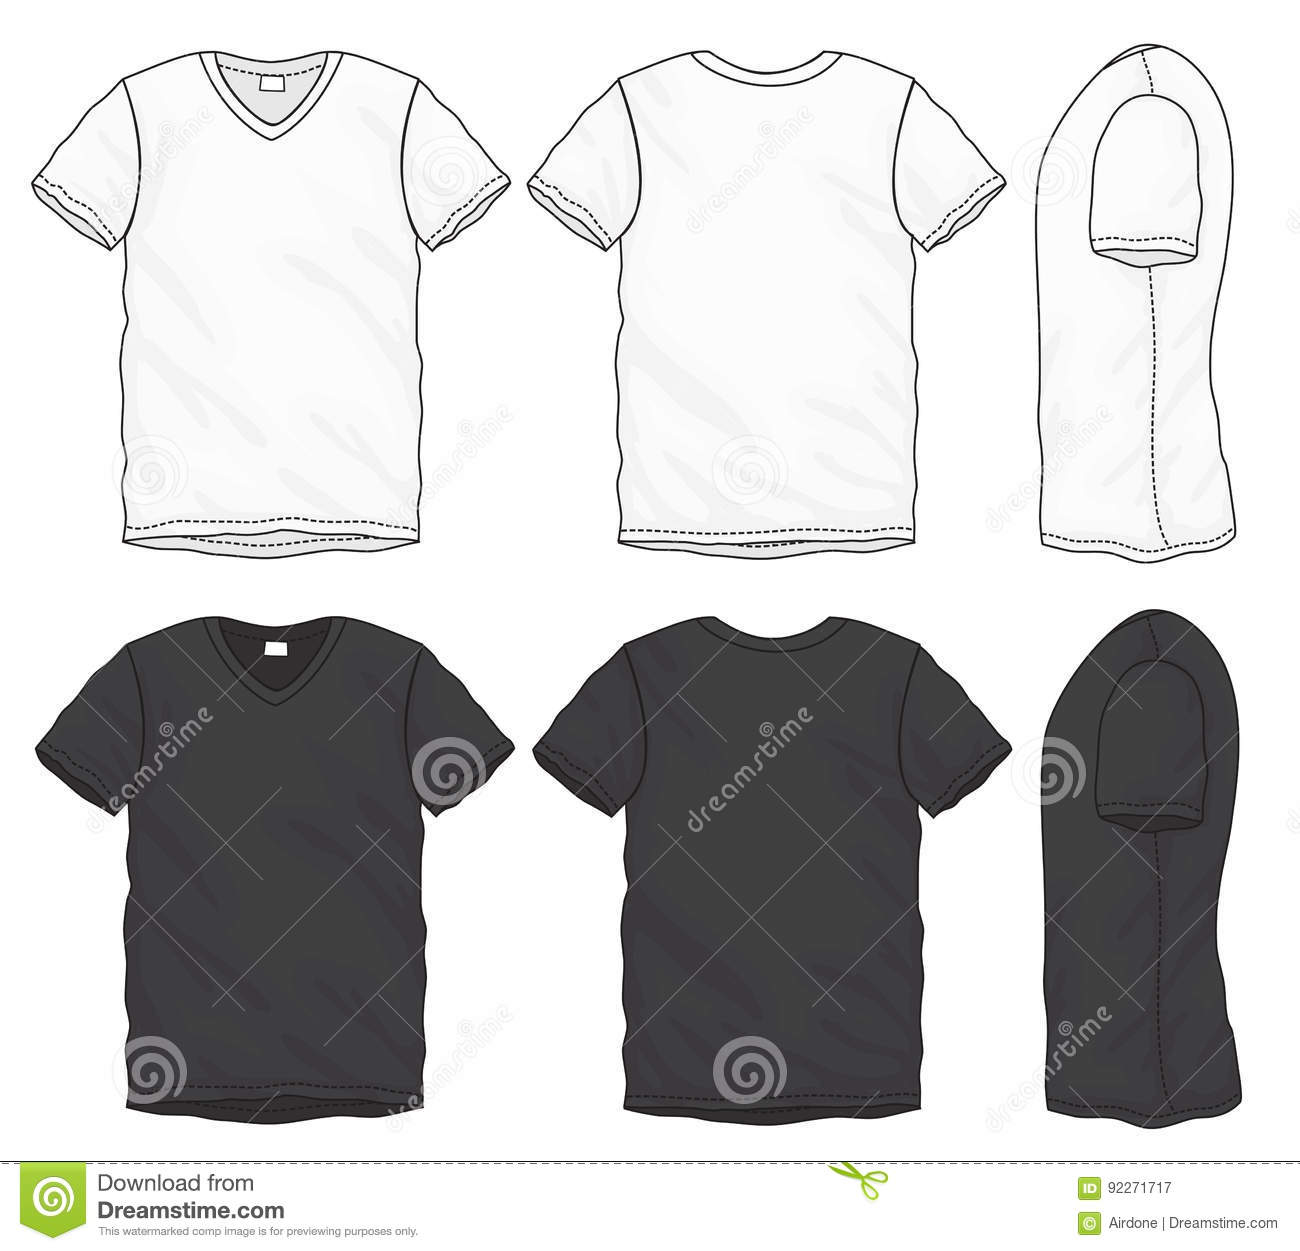 32e74aad Vector illustration of black and white short sleeved v-neck t-shirt,  isolated front and back design template for men